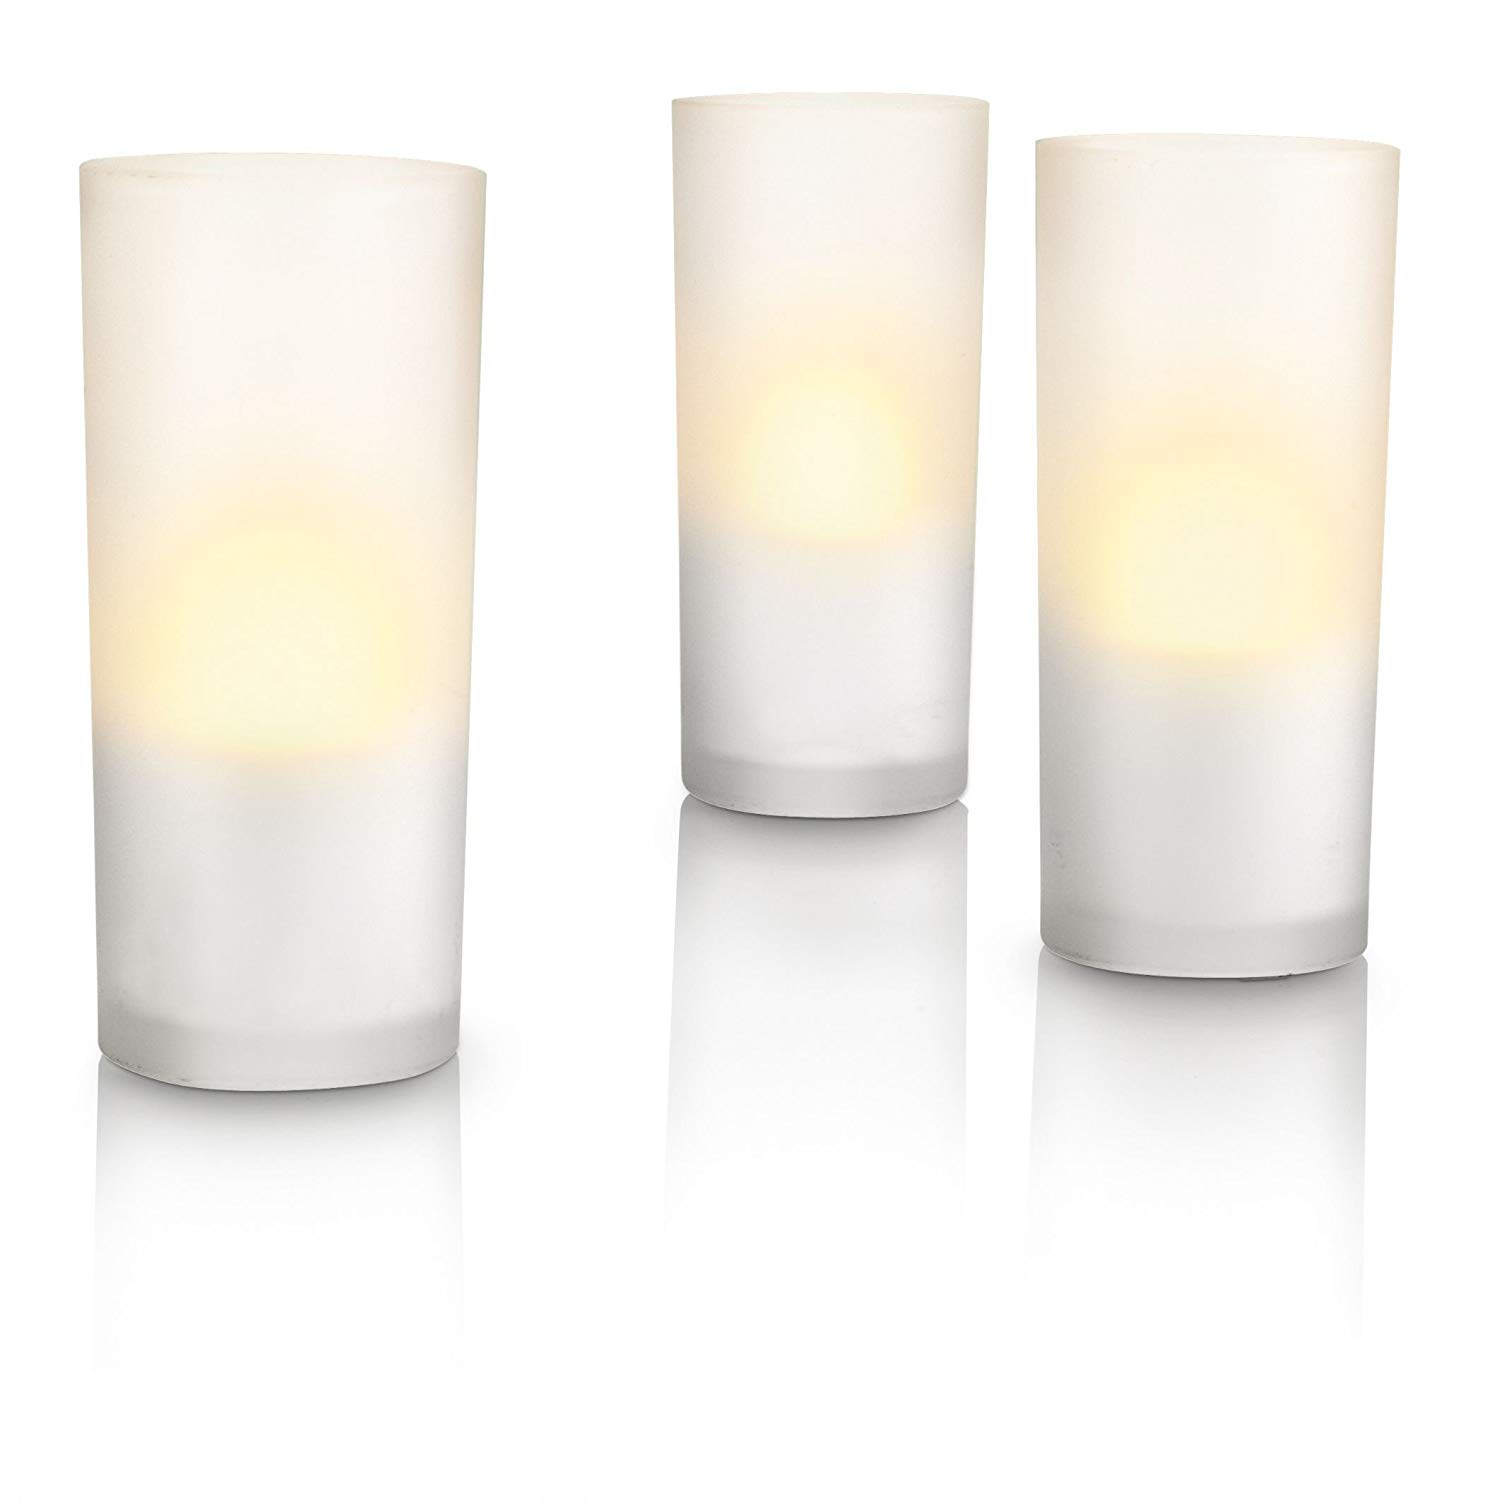 Philips Imageo CandleLights 3 Bougies LED Photophores Blanc Luminaire d'ambiance design Base de recharge (grise ou blanche)